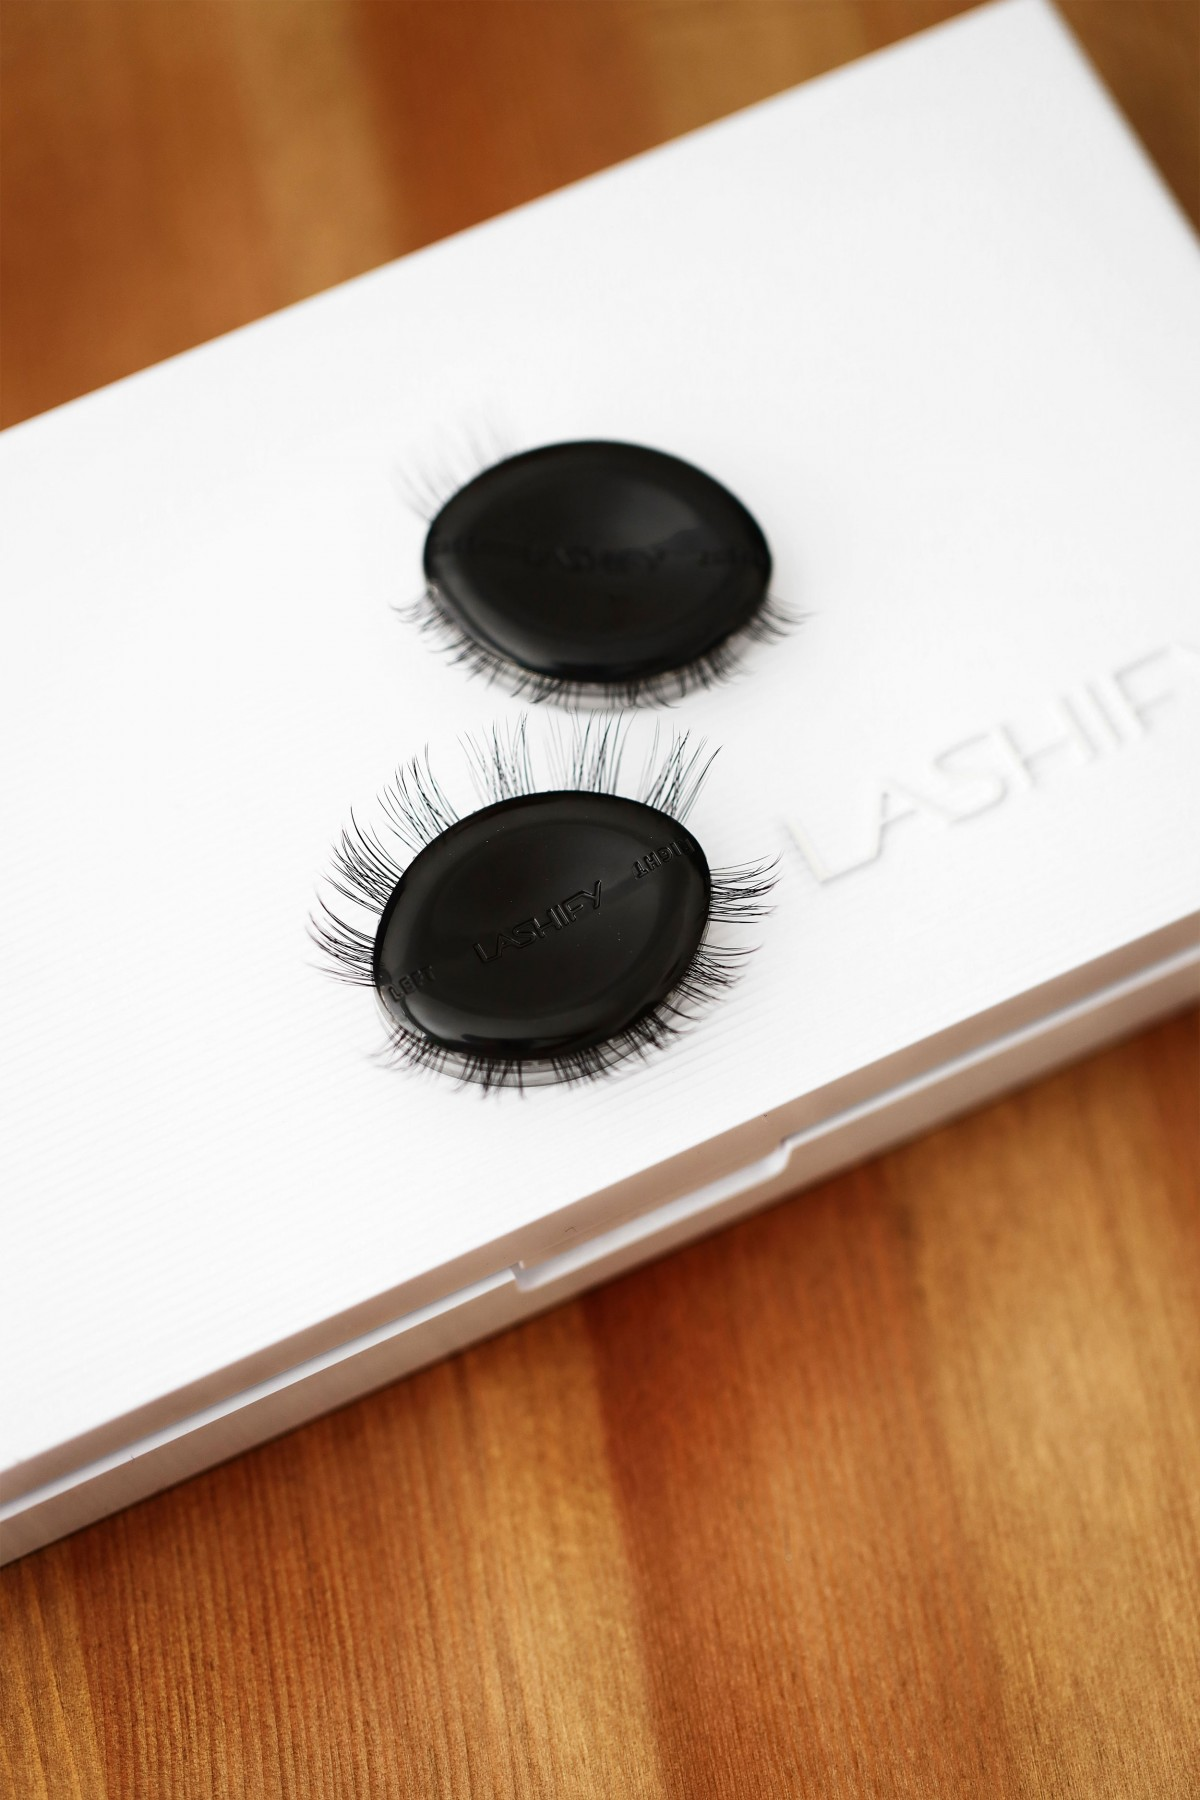 lashify review diy lash extensions Serein Wu